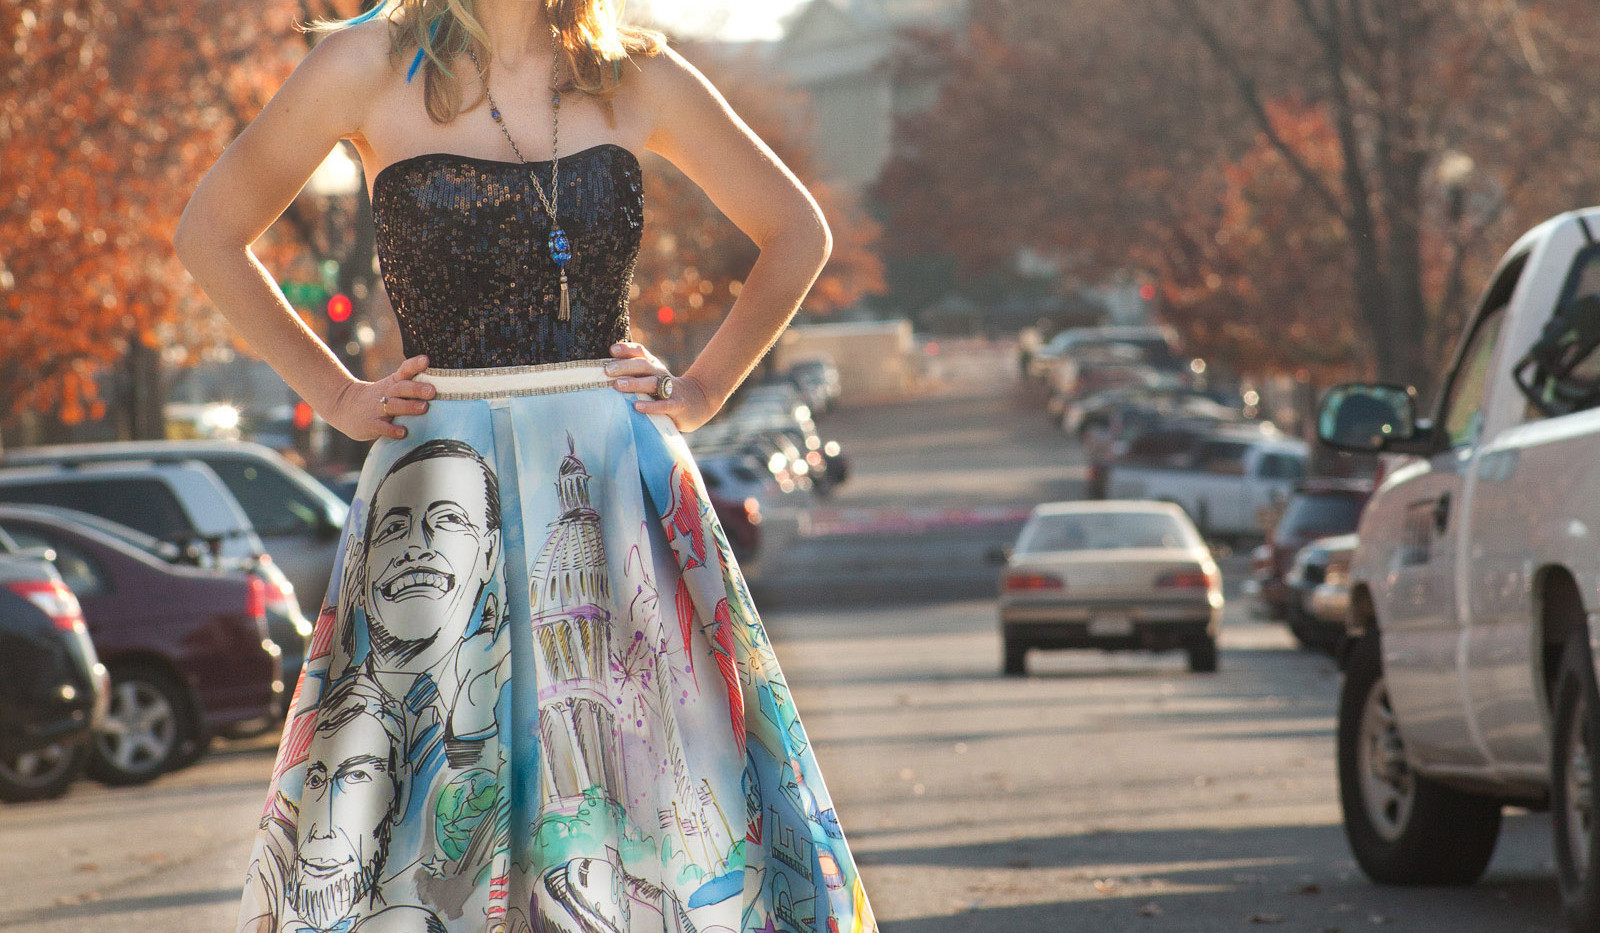 Obama Gown hand painted by expressive ar